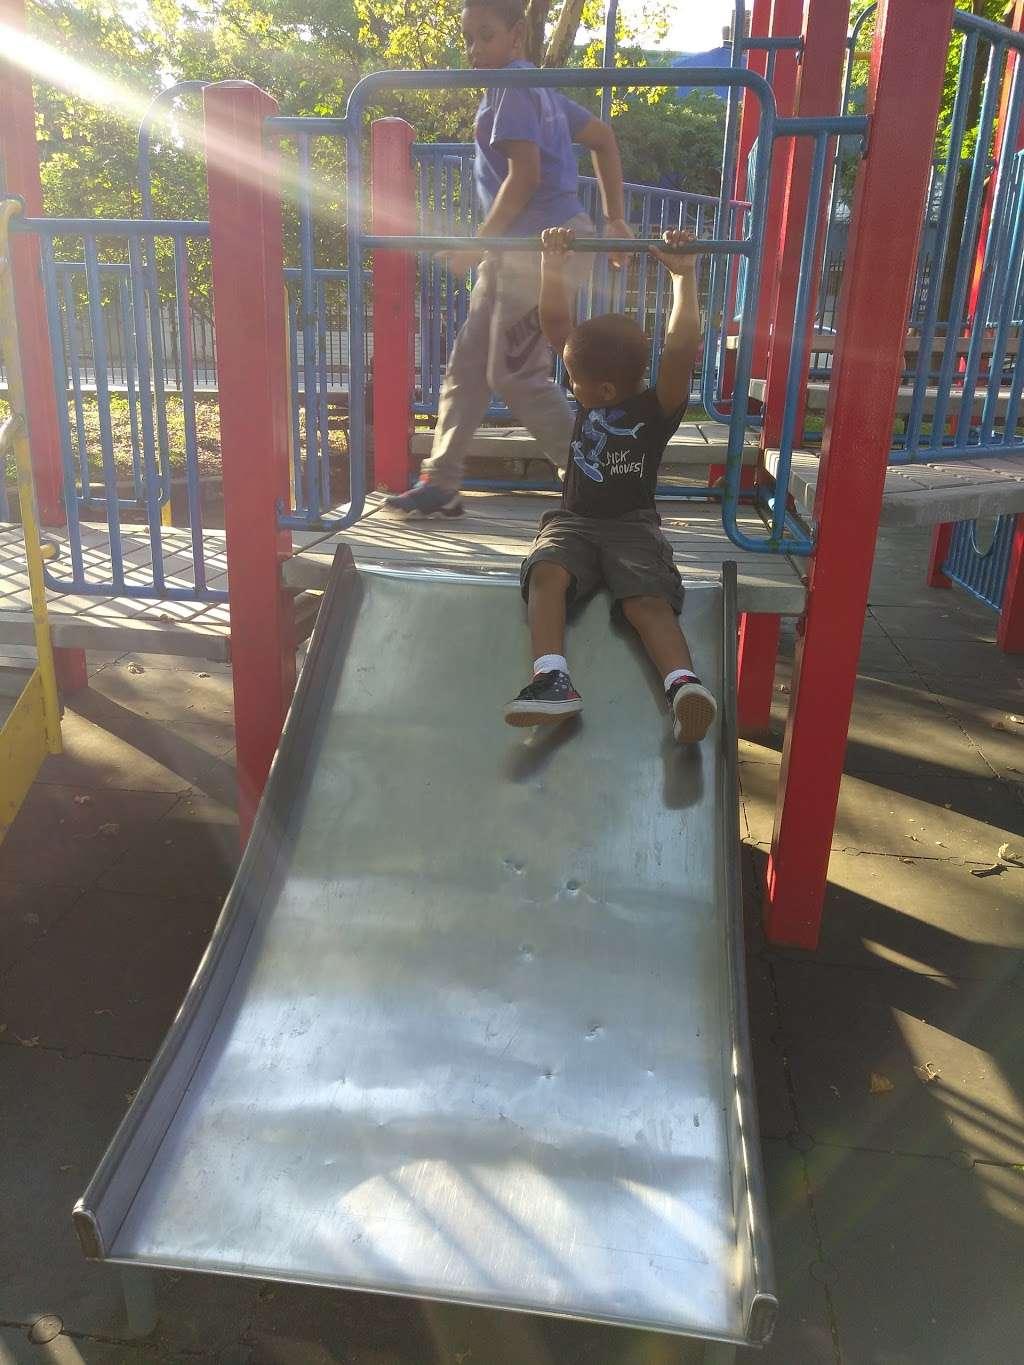 Youth Village Playground - park  | Photo 5 of 10 | Address: 1181 Boston Rd, Bronx, NY 10456, USA | Phone: (212) 639-9675